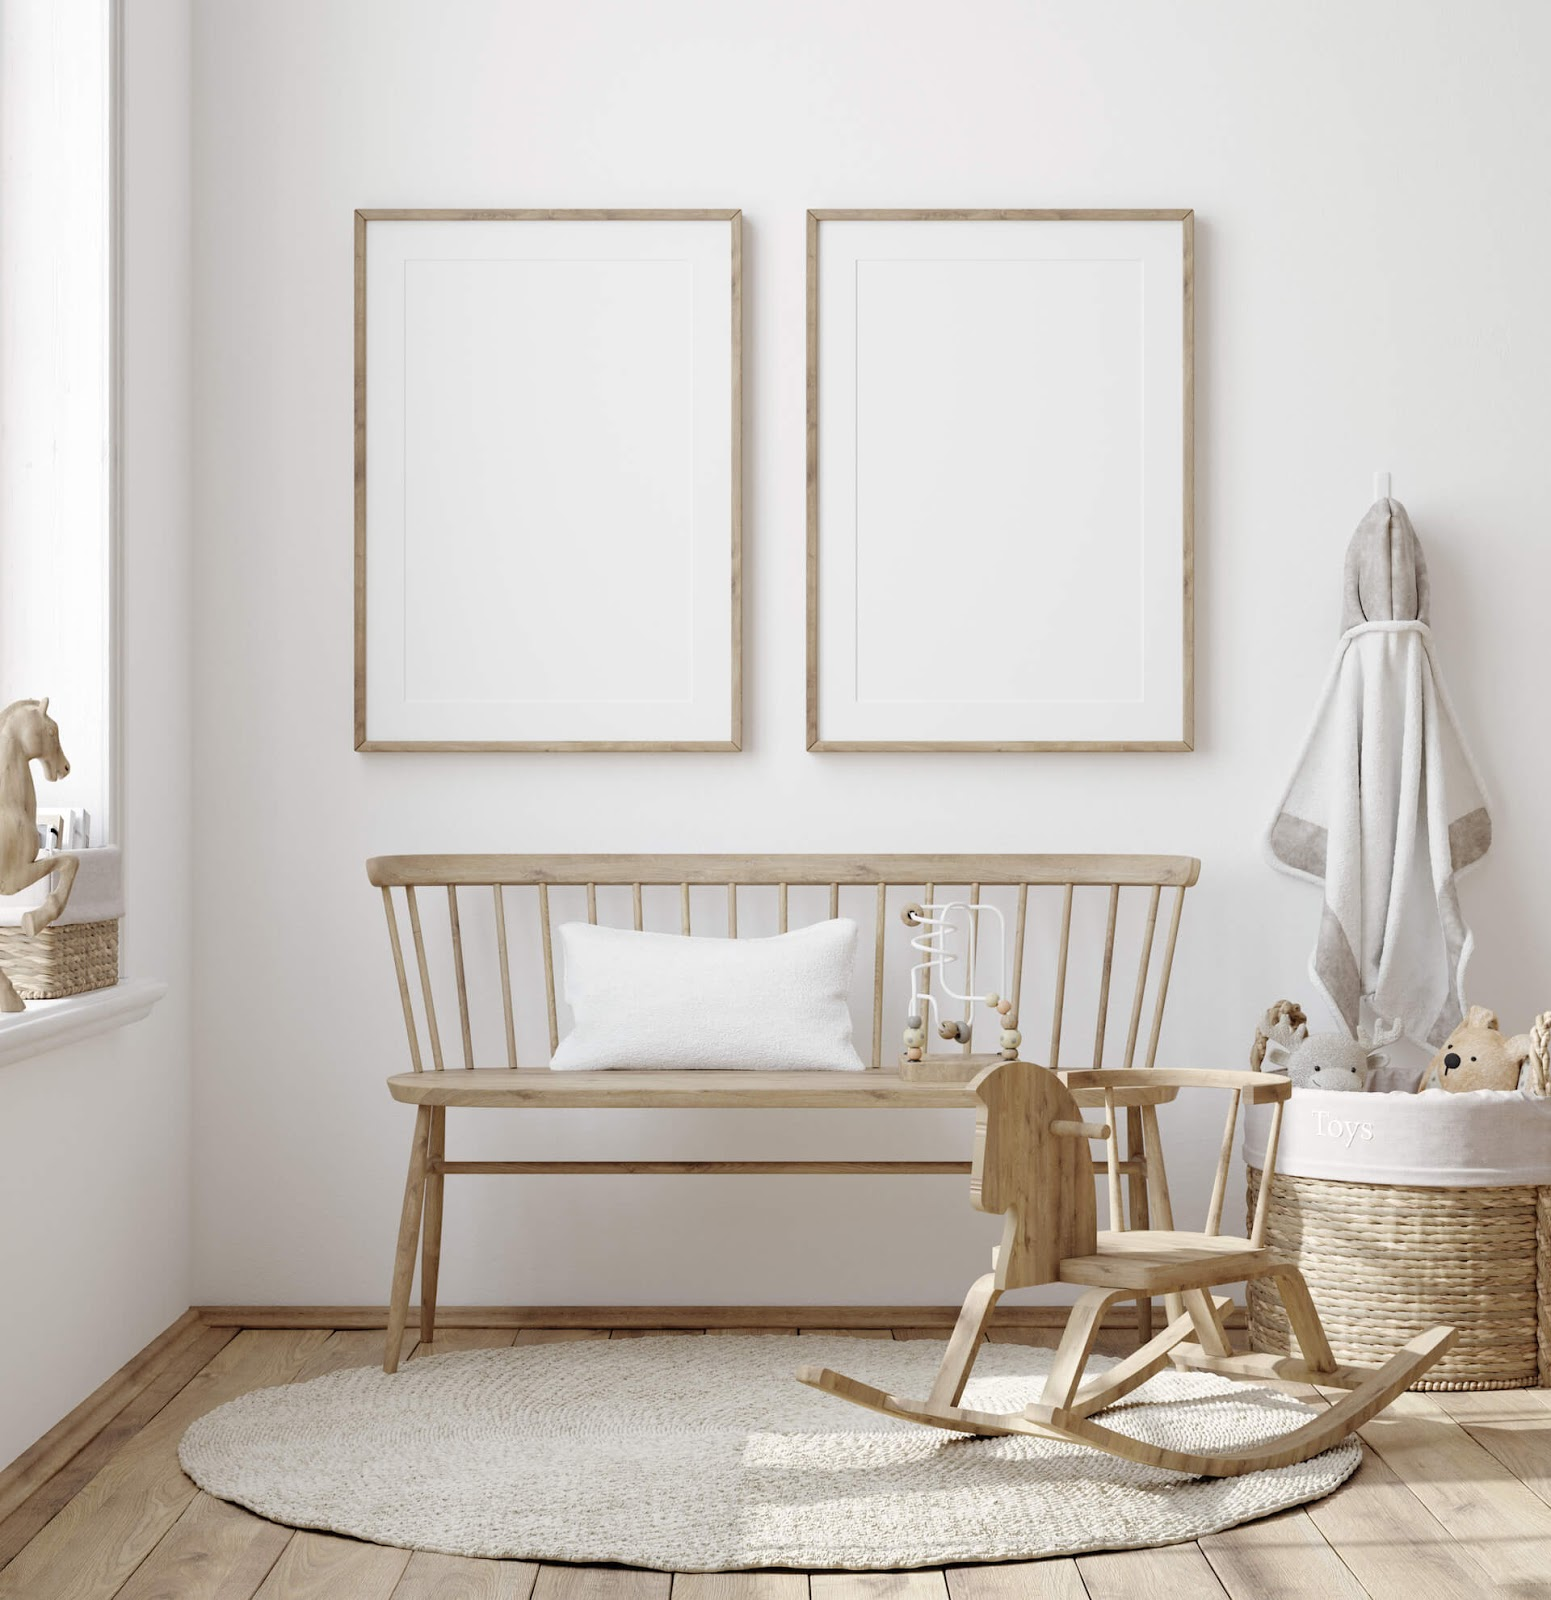 Room painted white